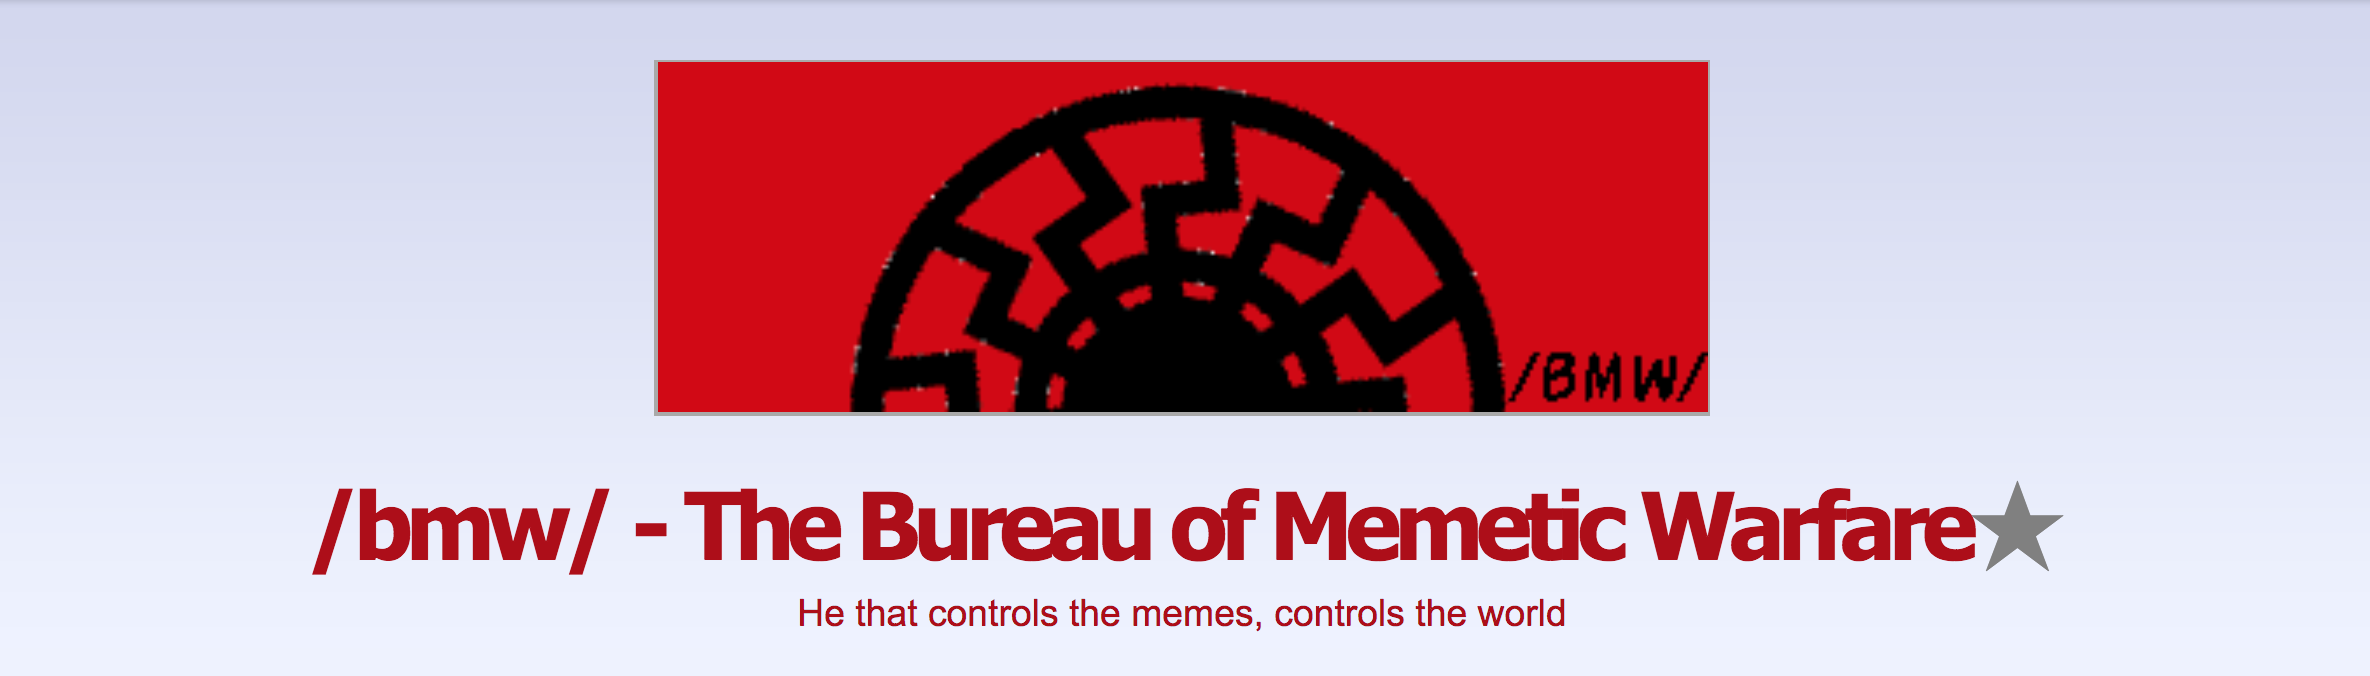 4Chan Torrent the bureau of memetic warfare — september 2015 (cw)